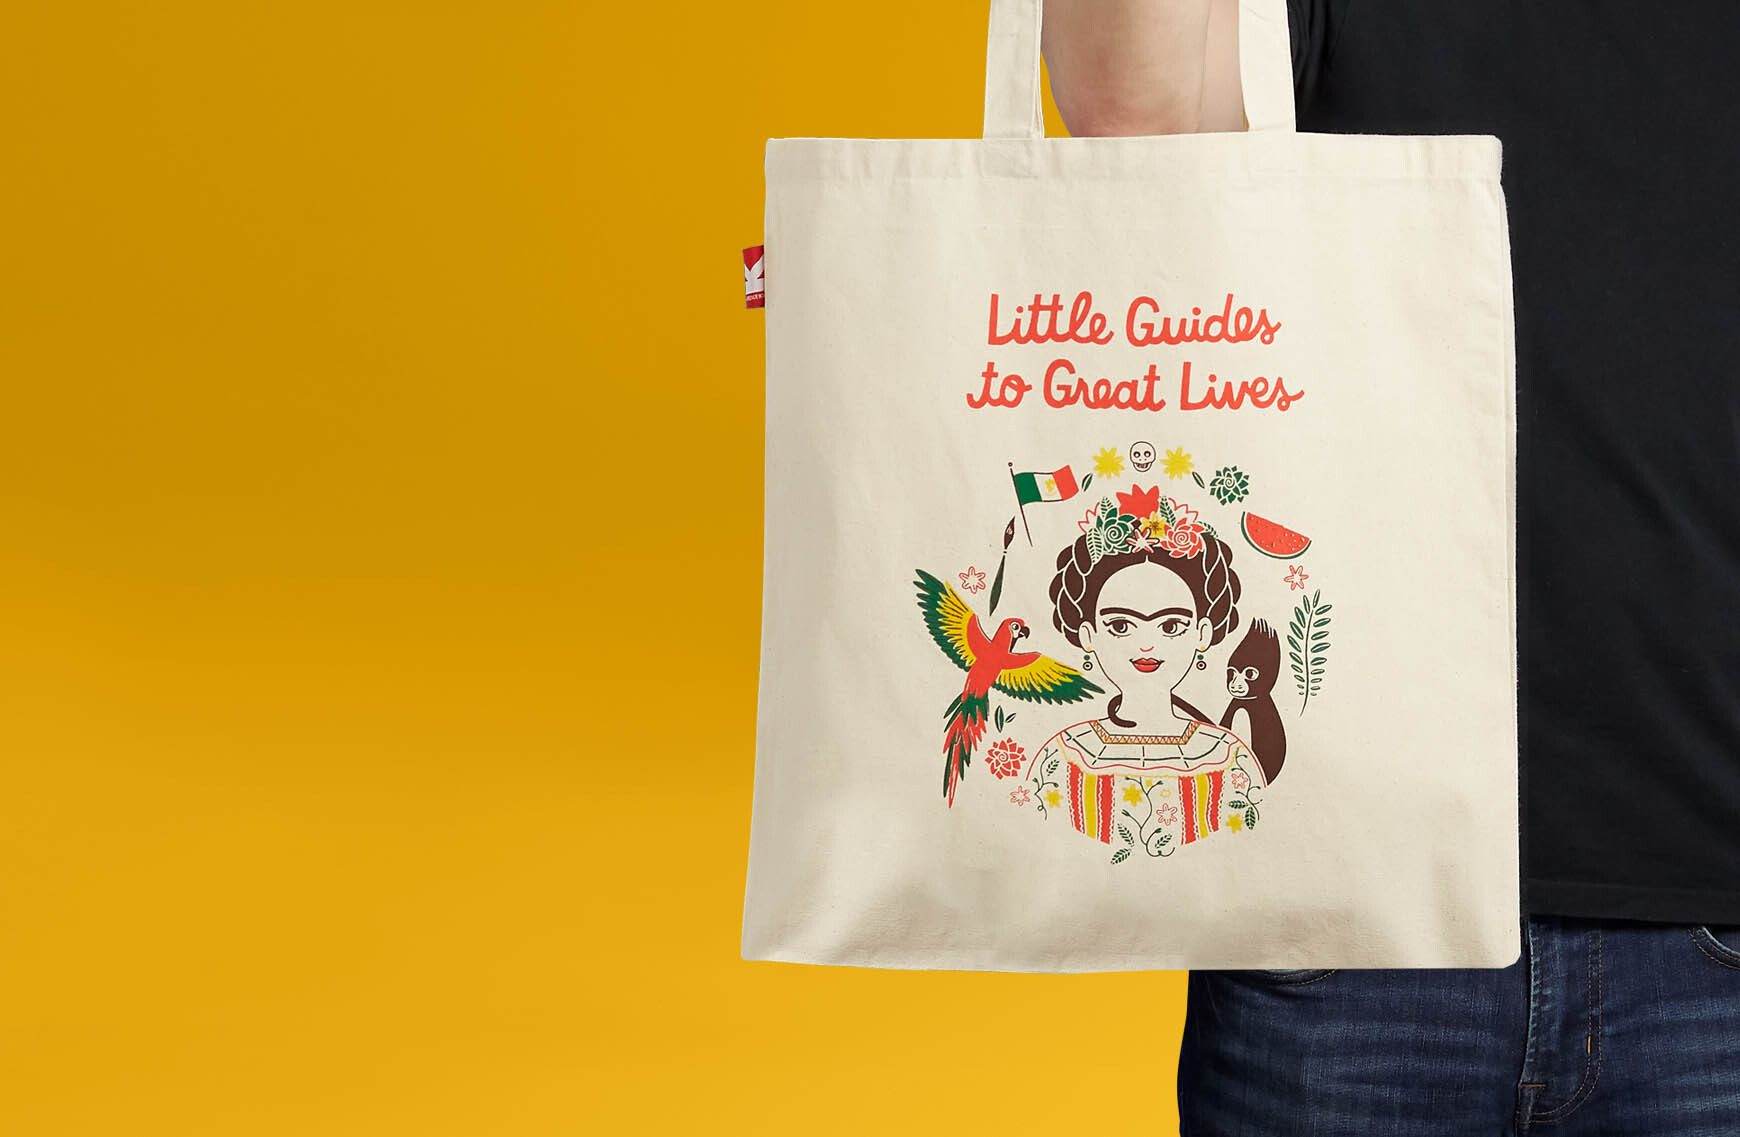 Tote bag with writing and image printed on it